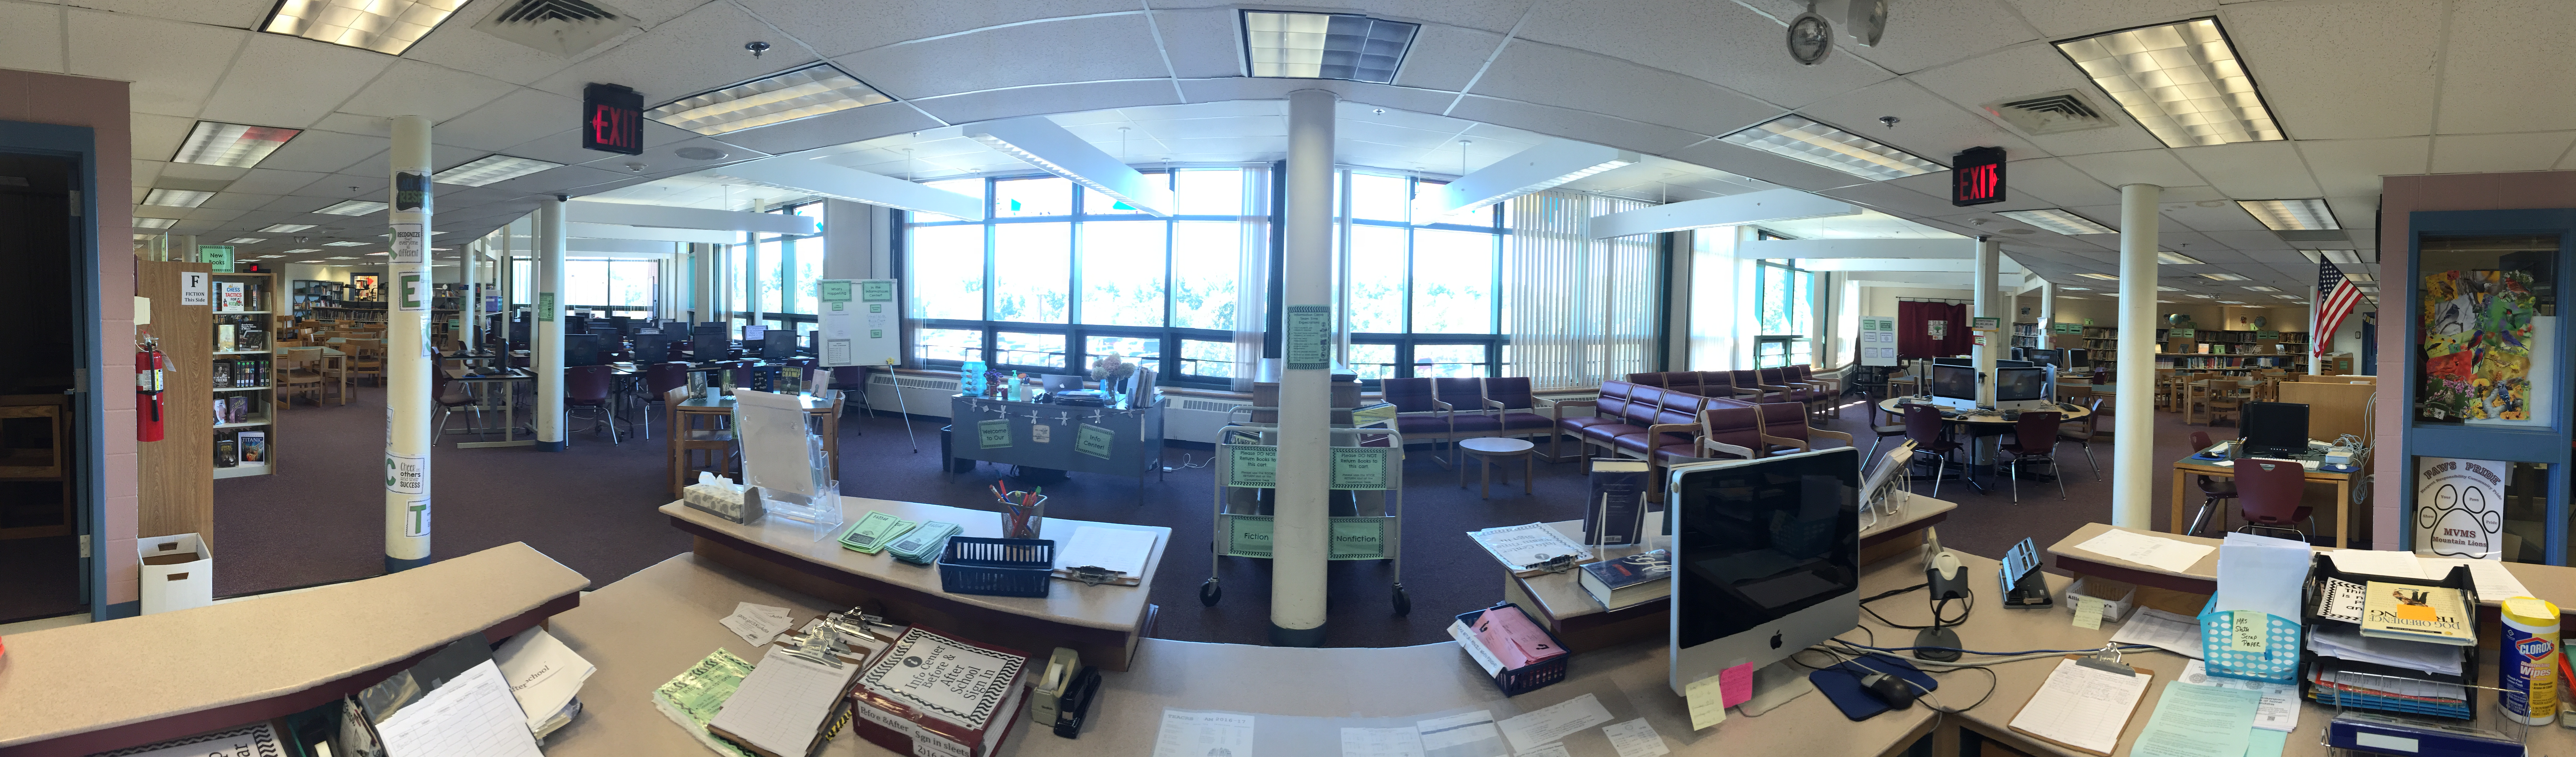 Panoramic View of the Info Center